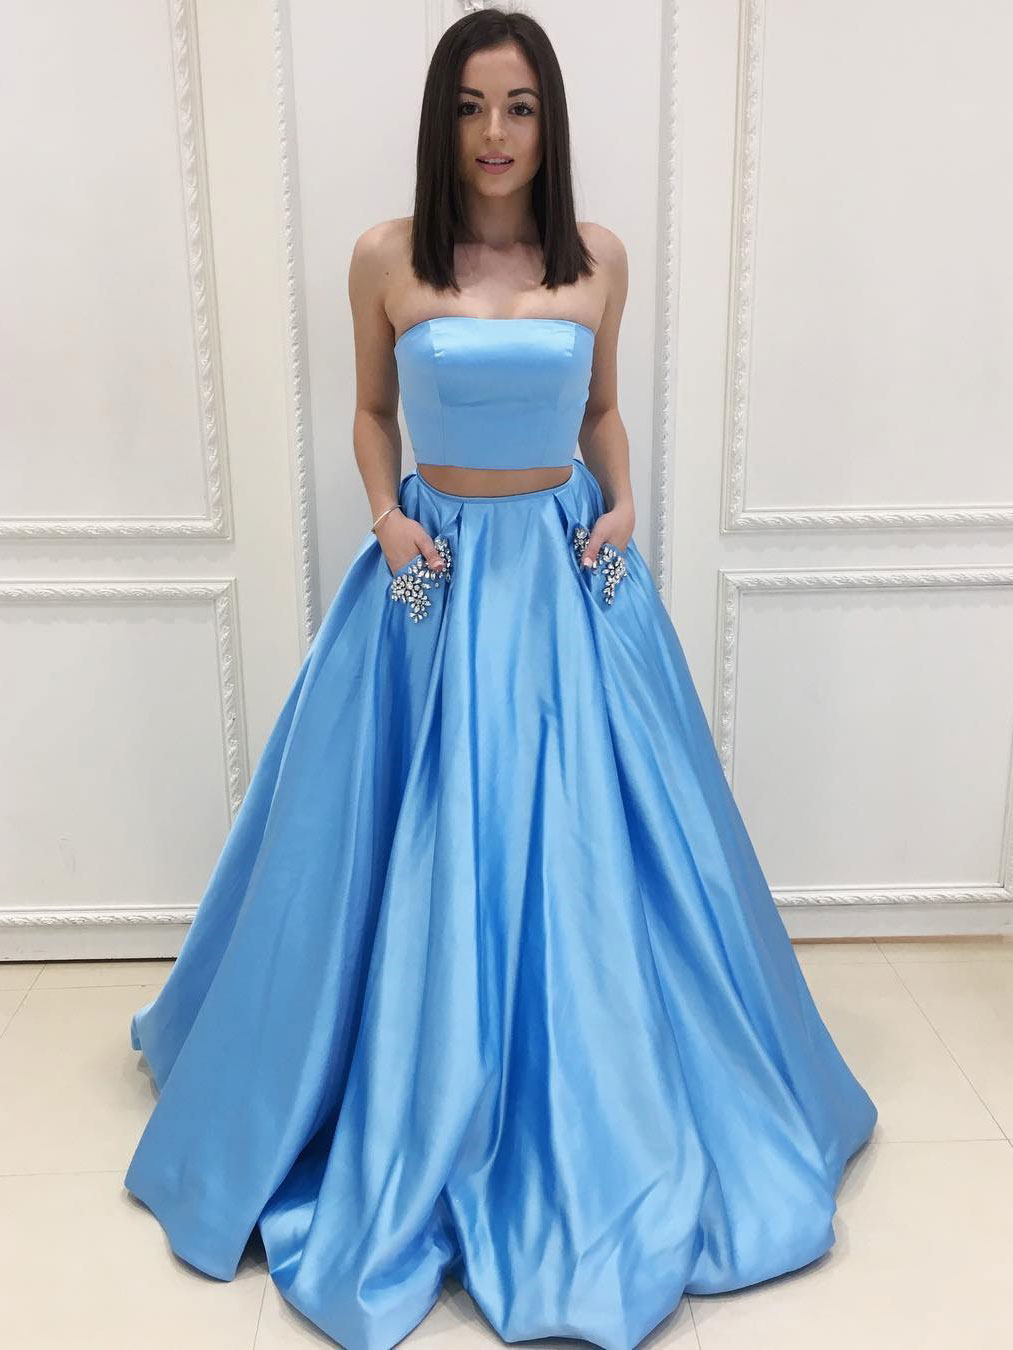 Strapless Taffeta Two-Piece Prom Dress With Puffy Skirt Floor Length ...